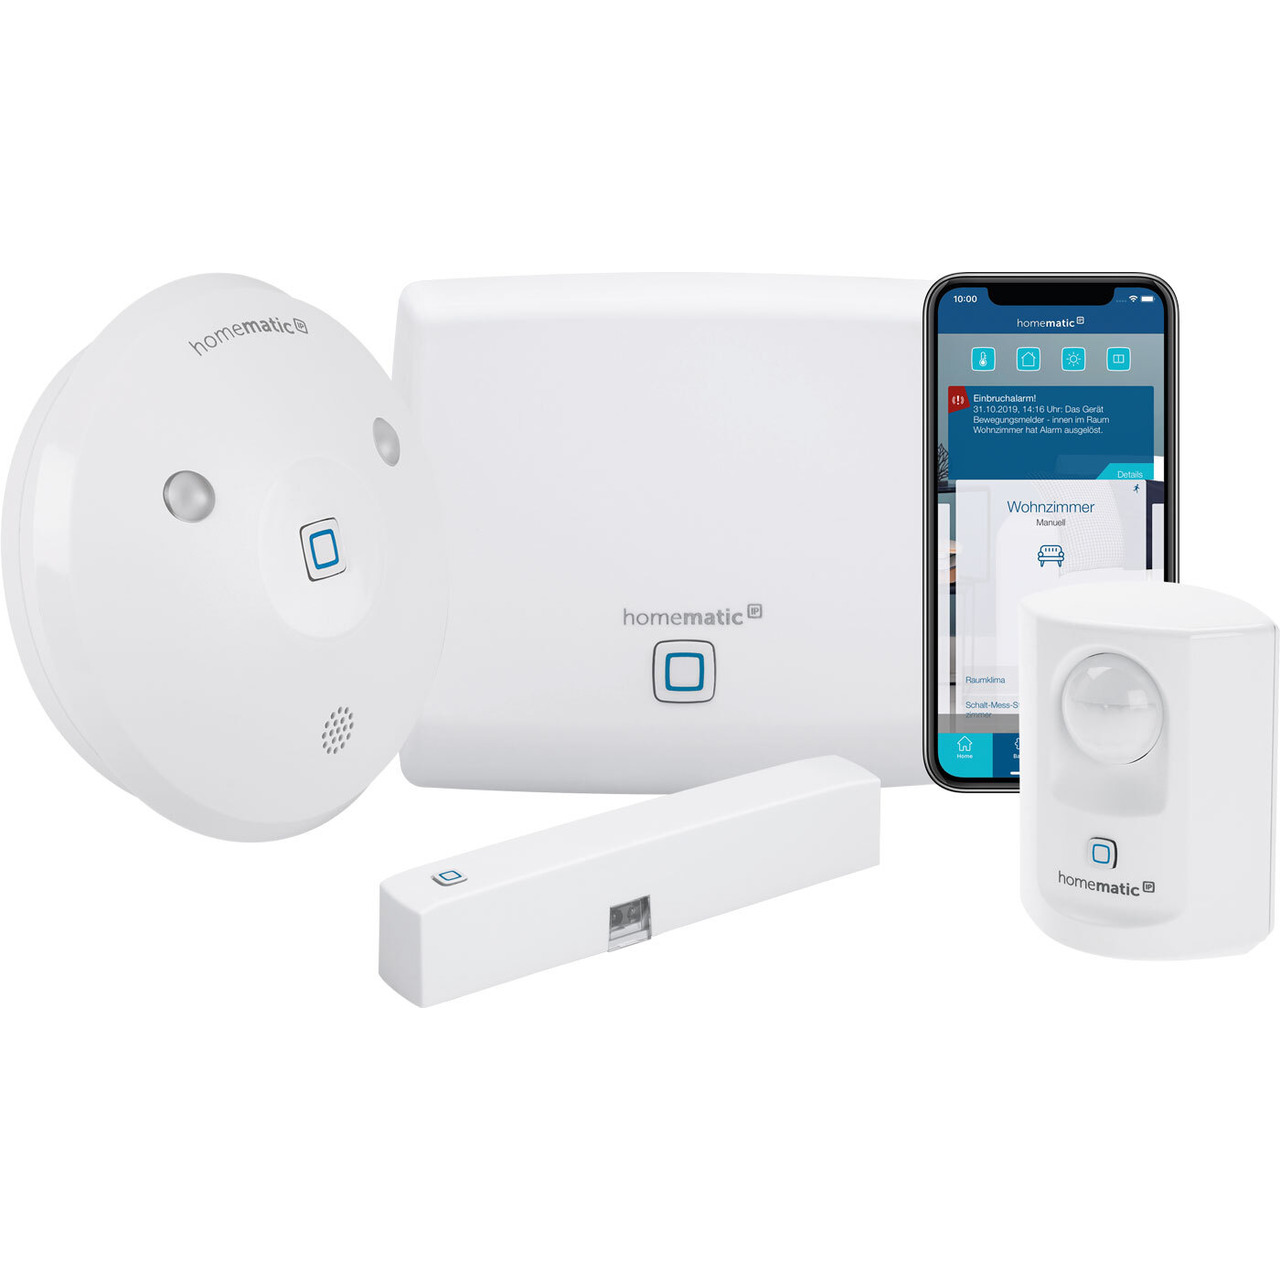 Homematic IP Starter Set Alarm mit Access Point- Alarmsirene- Fenster-Türkontakt- Bewegungsmelder